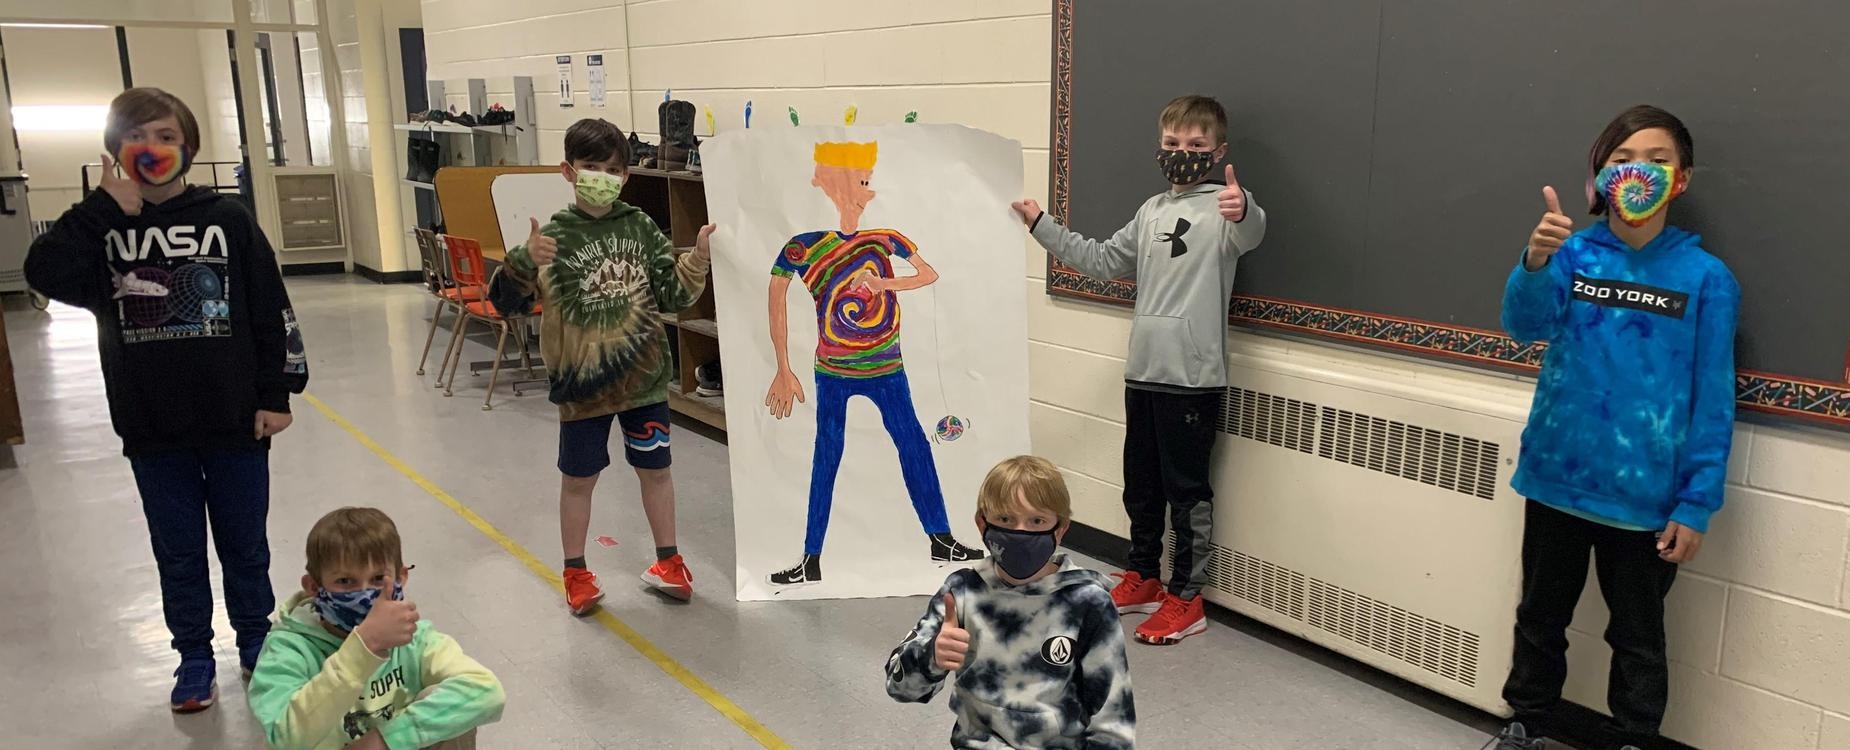 6 male students from a Grade 4/5 class, posing in the hallway with 2 students holding a life-sized picture of the NED character.